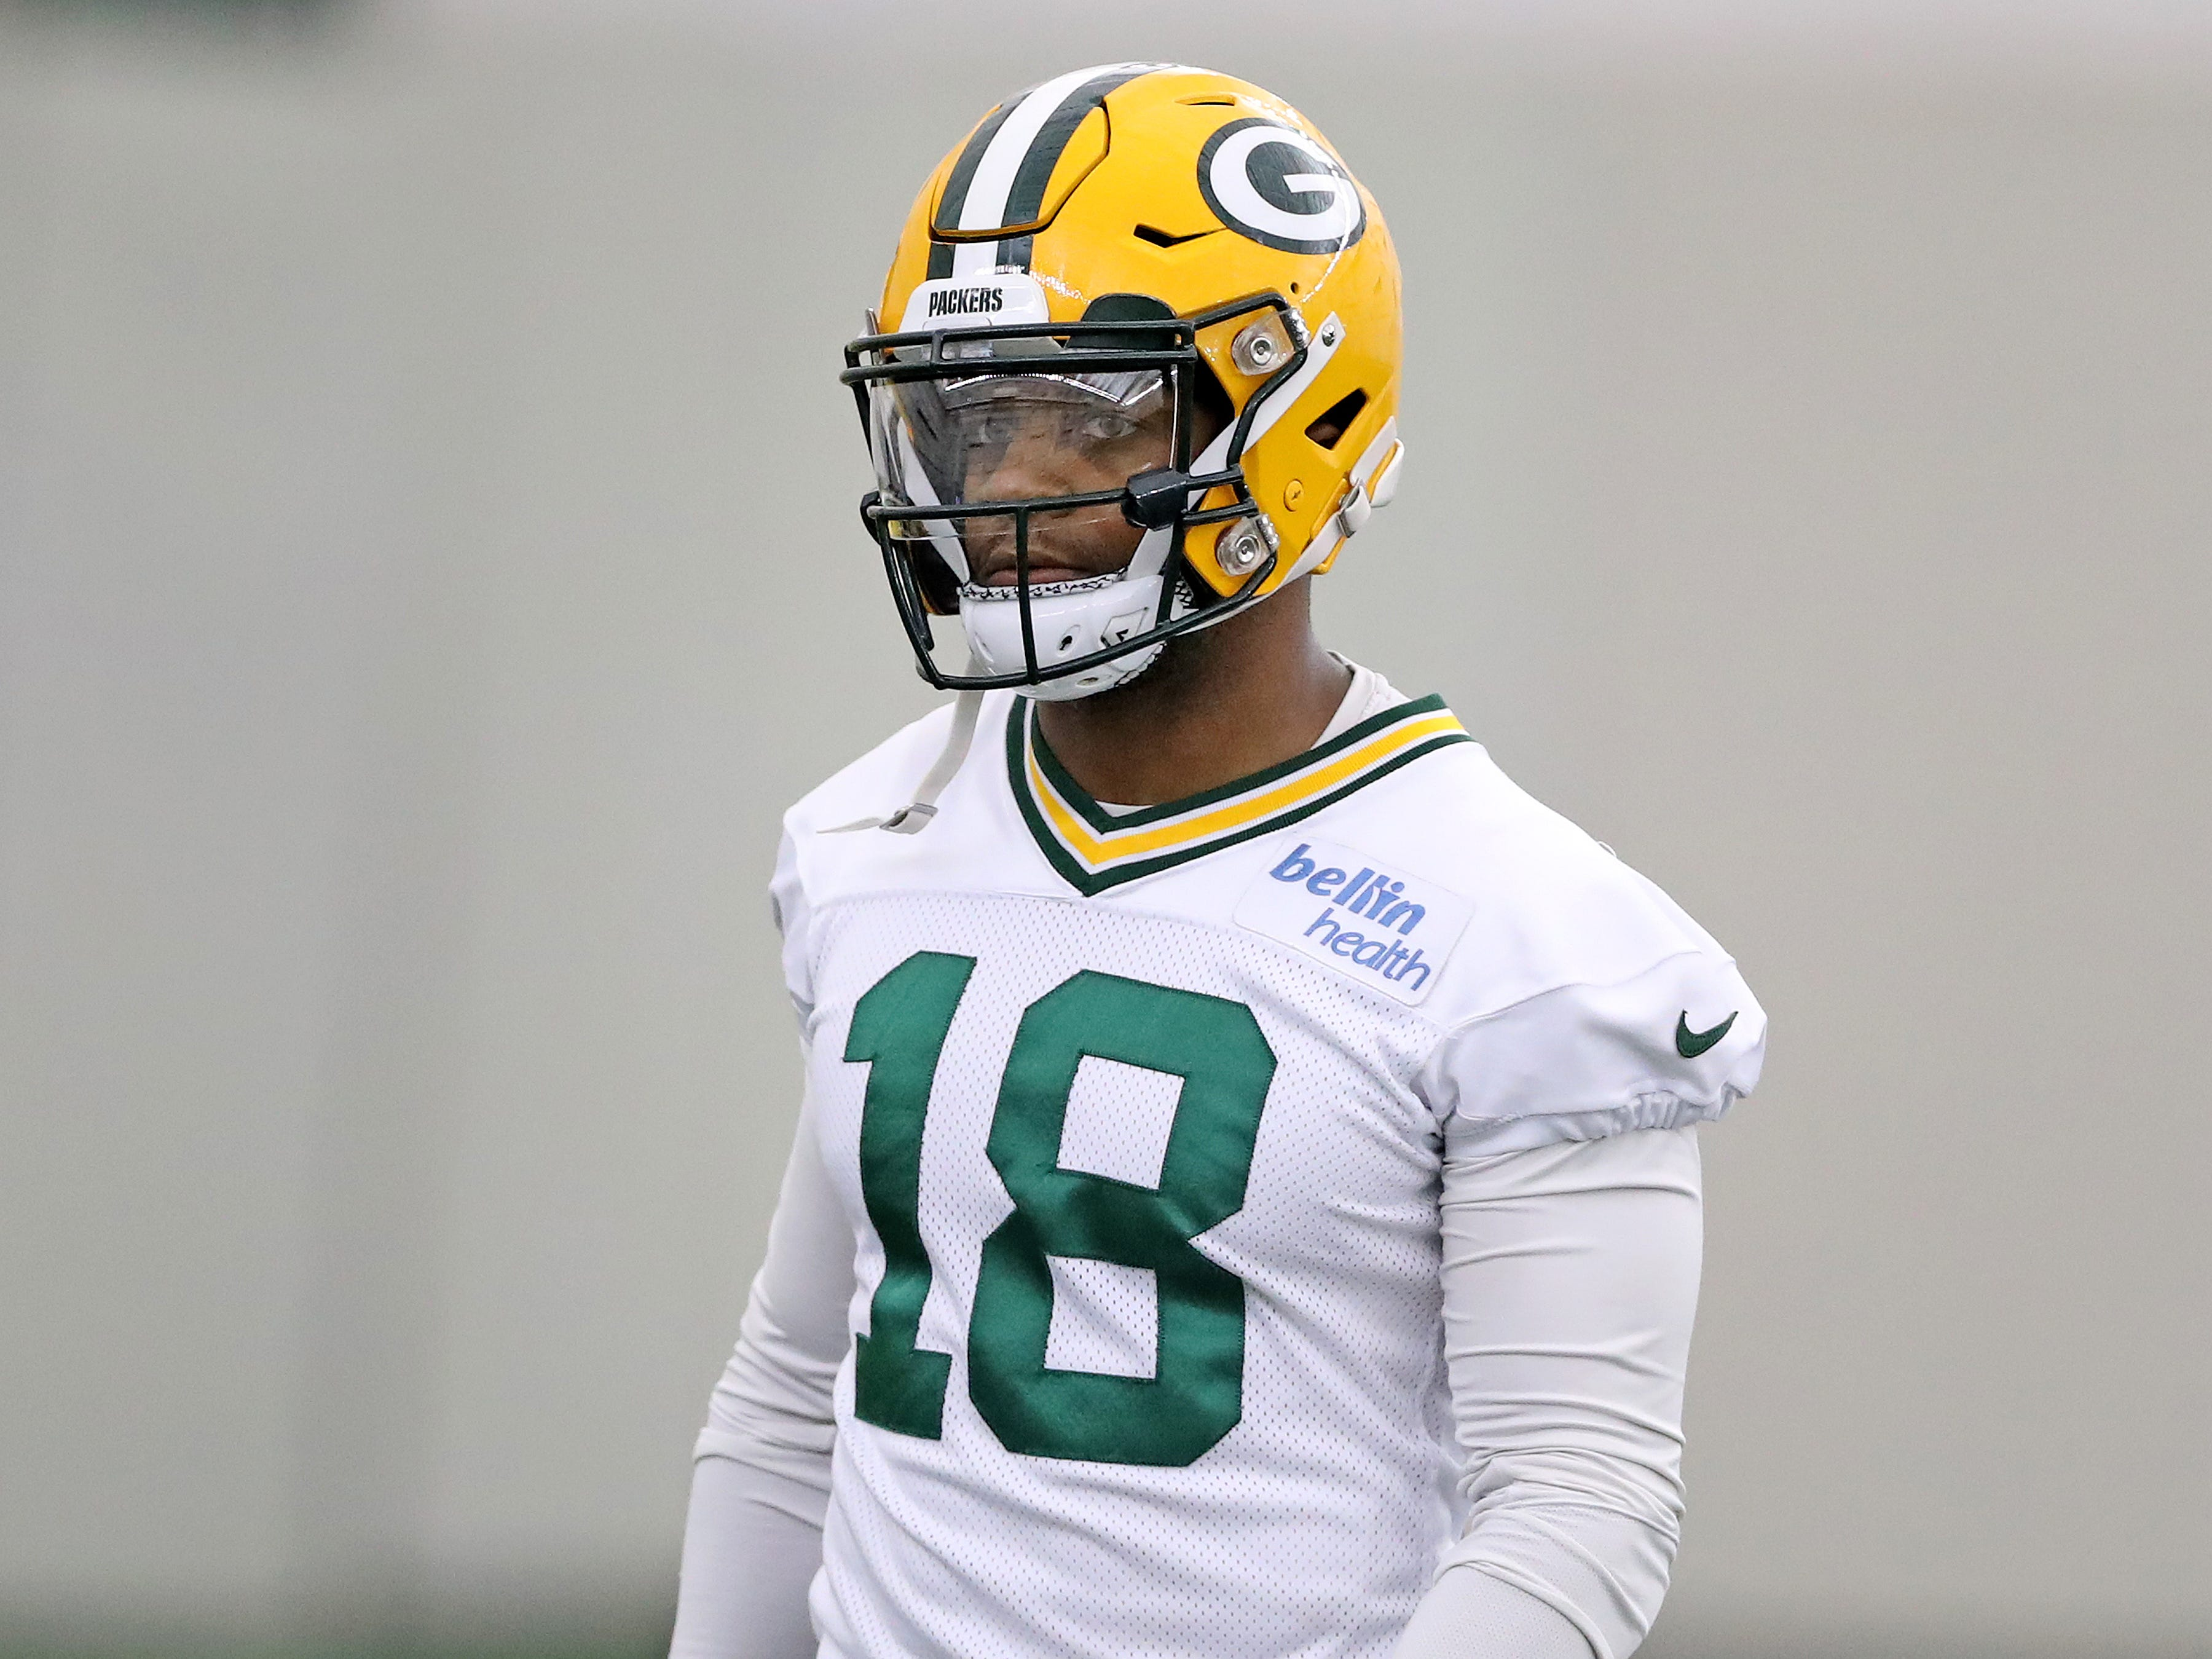 Green Bay Packers wide receiver Randall Cobb (18) during practice inside the Hutson Center Thursday, October 11, 2018 in Ashwaubenon, Wis.